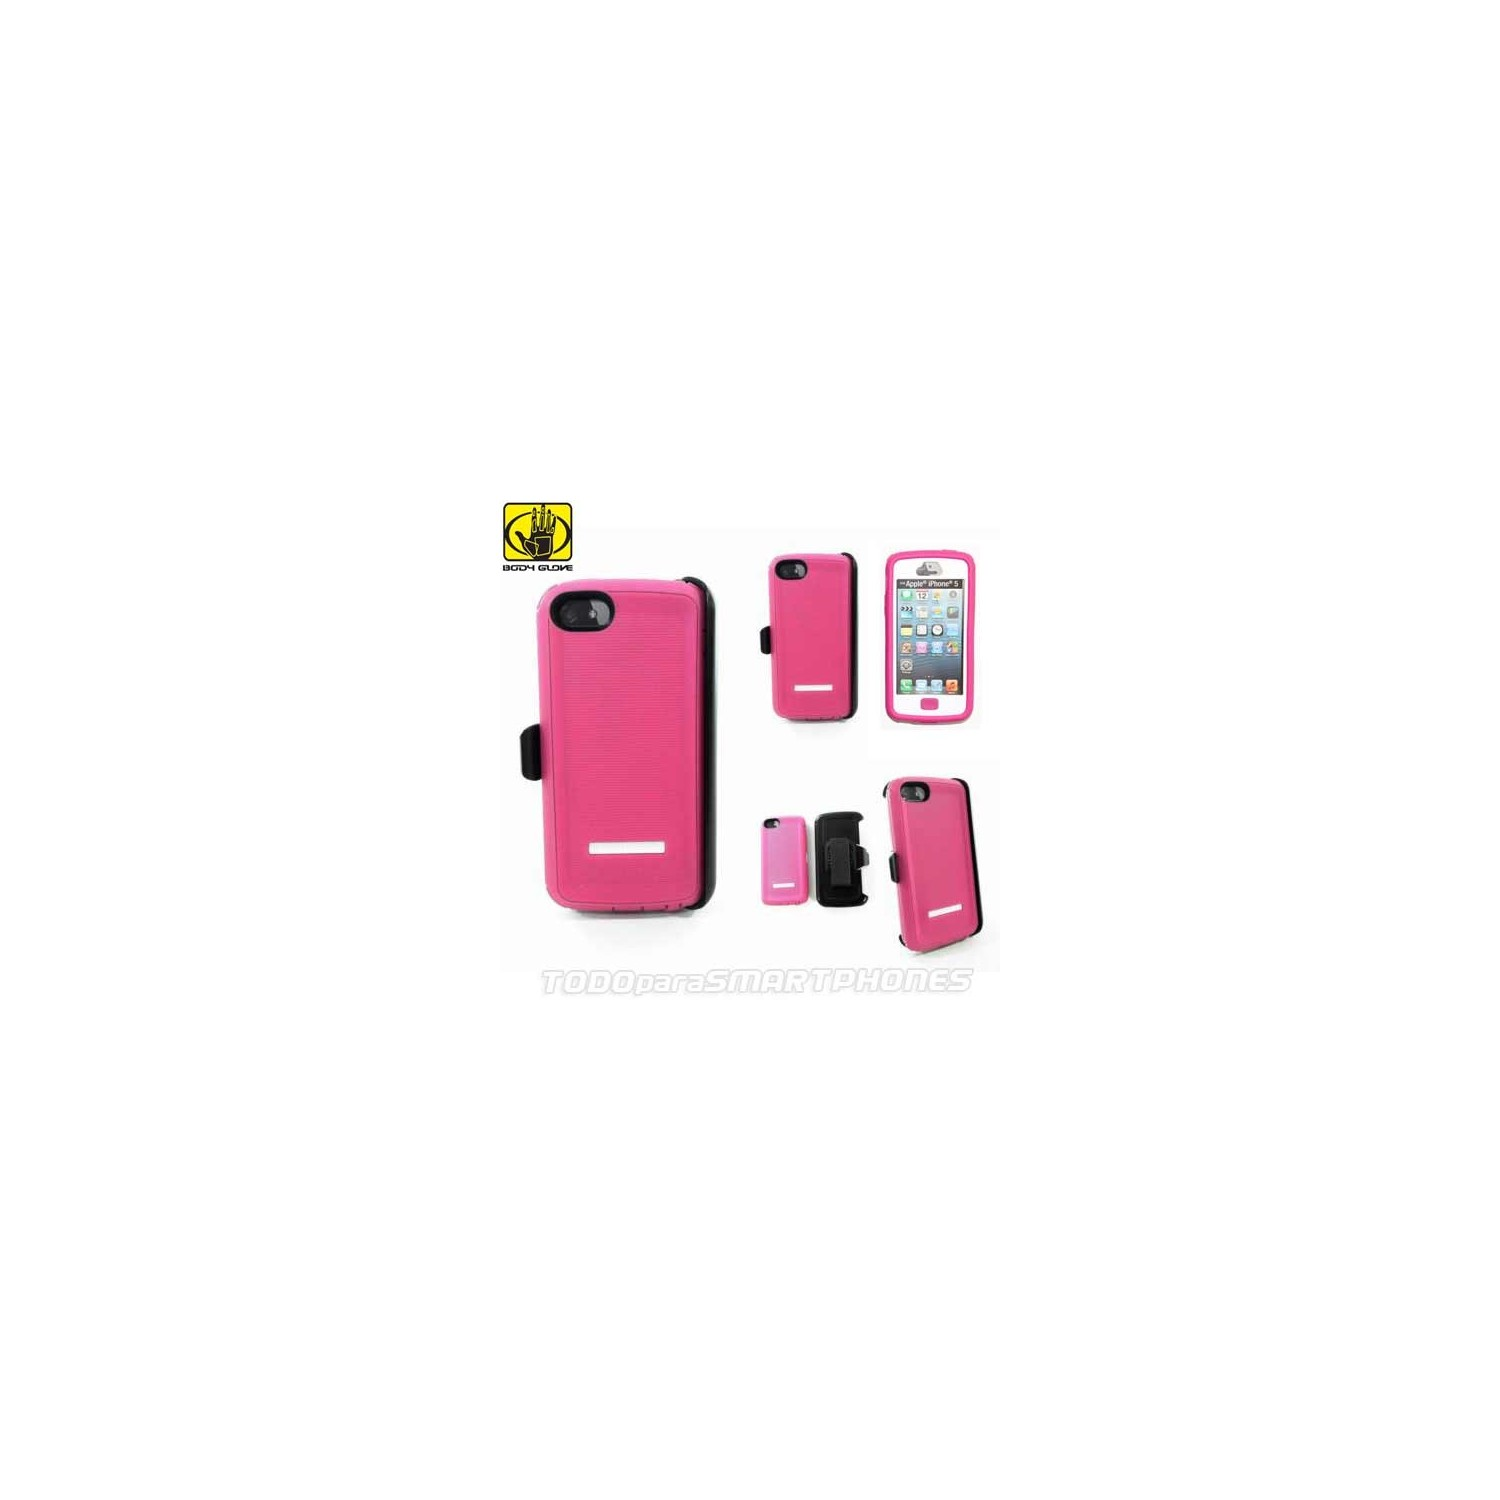 Case - Body Glove for iPhone 5 Thougsuit pink